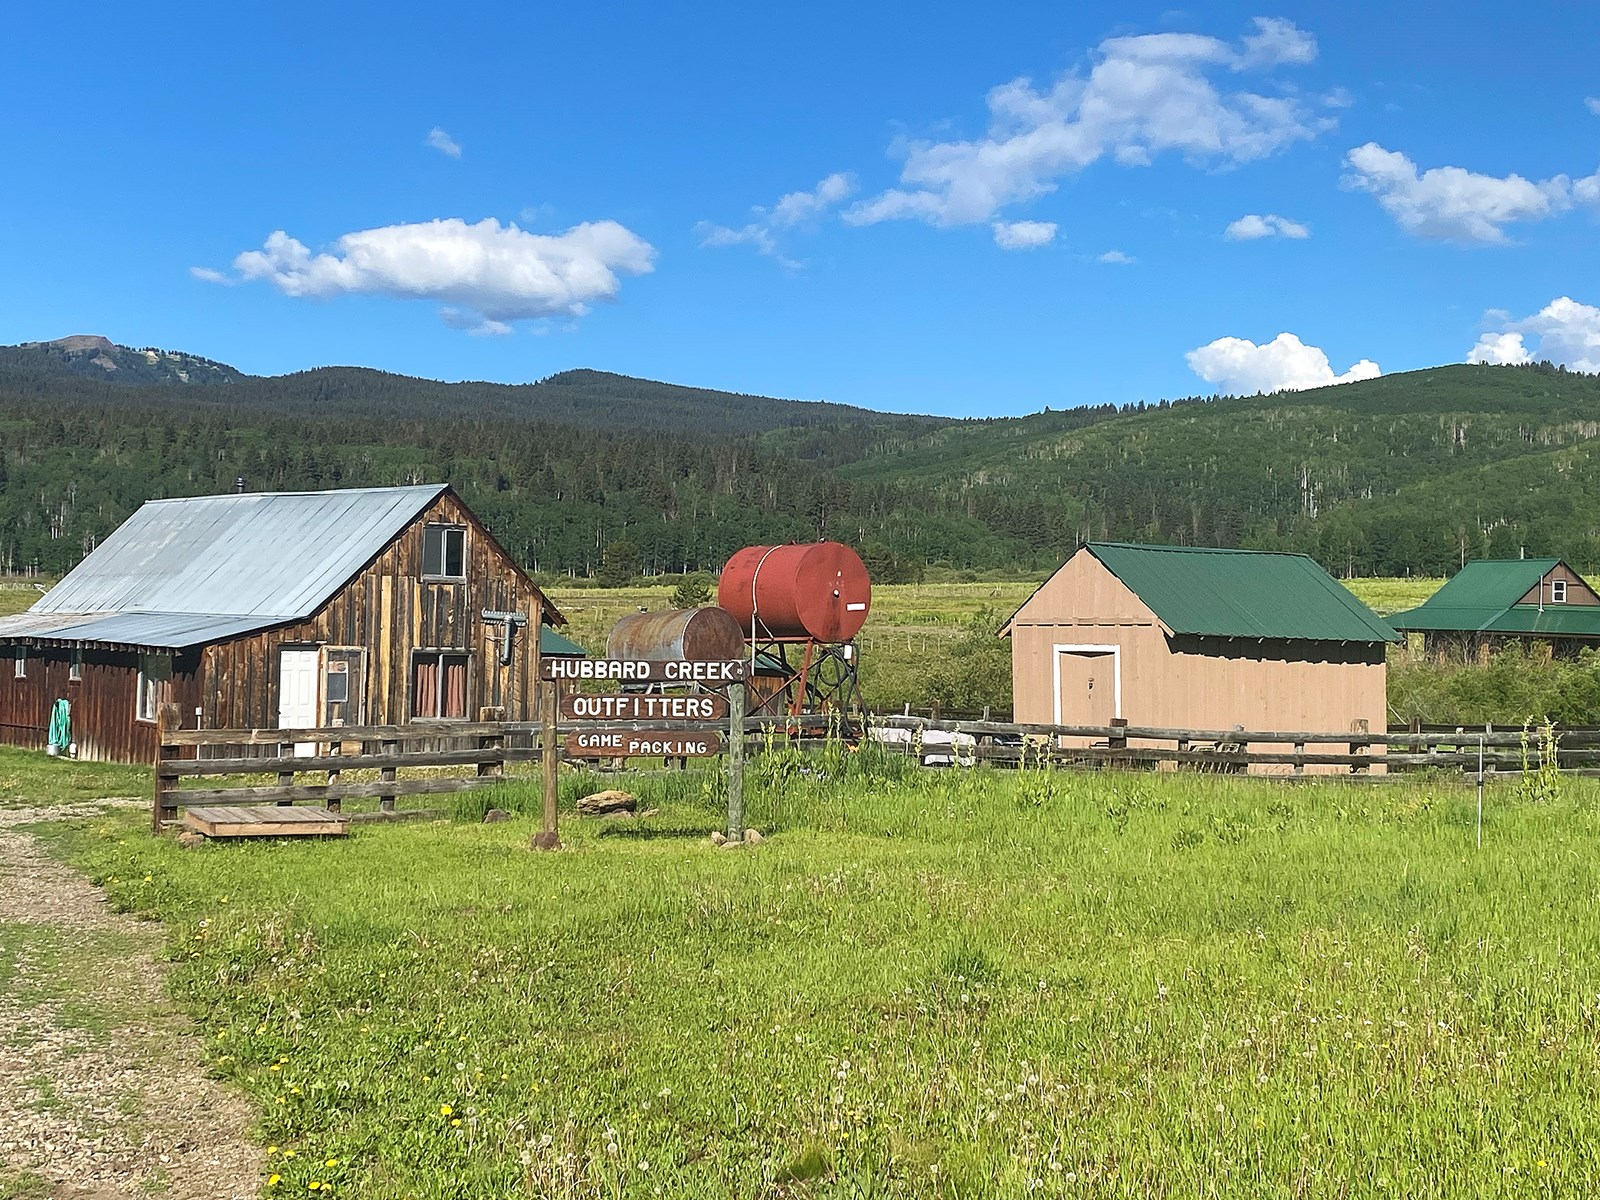 Colorado outfitting business for sale with mountain cabin